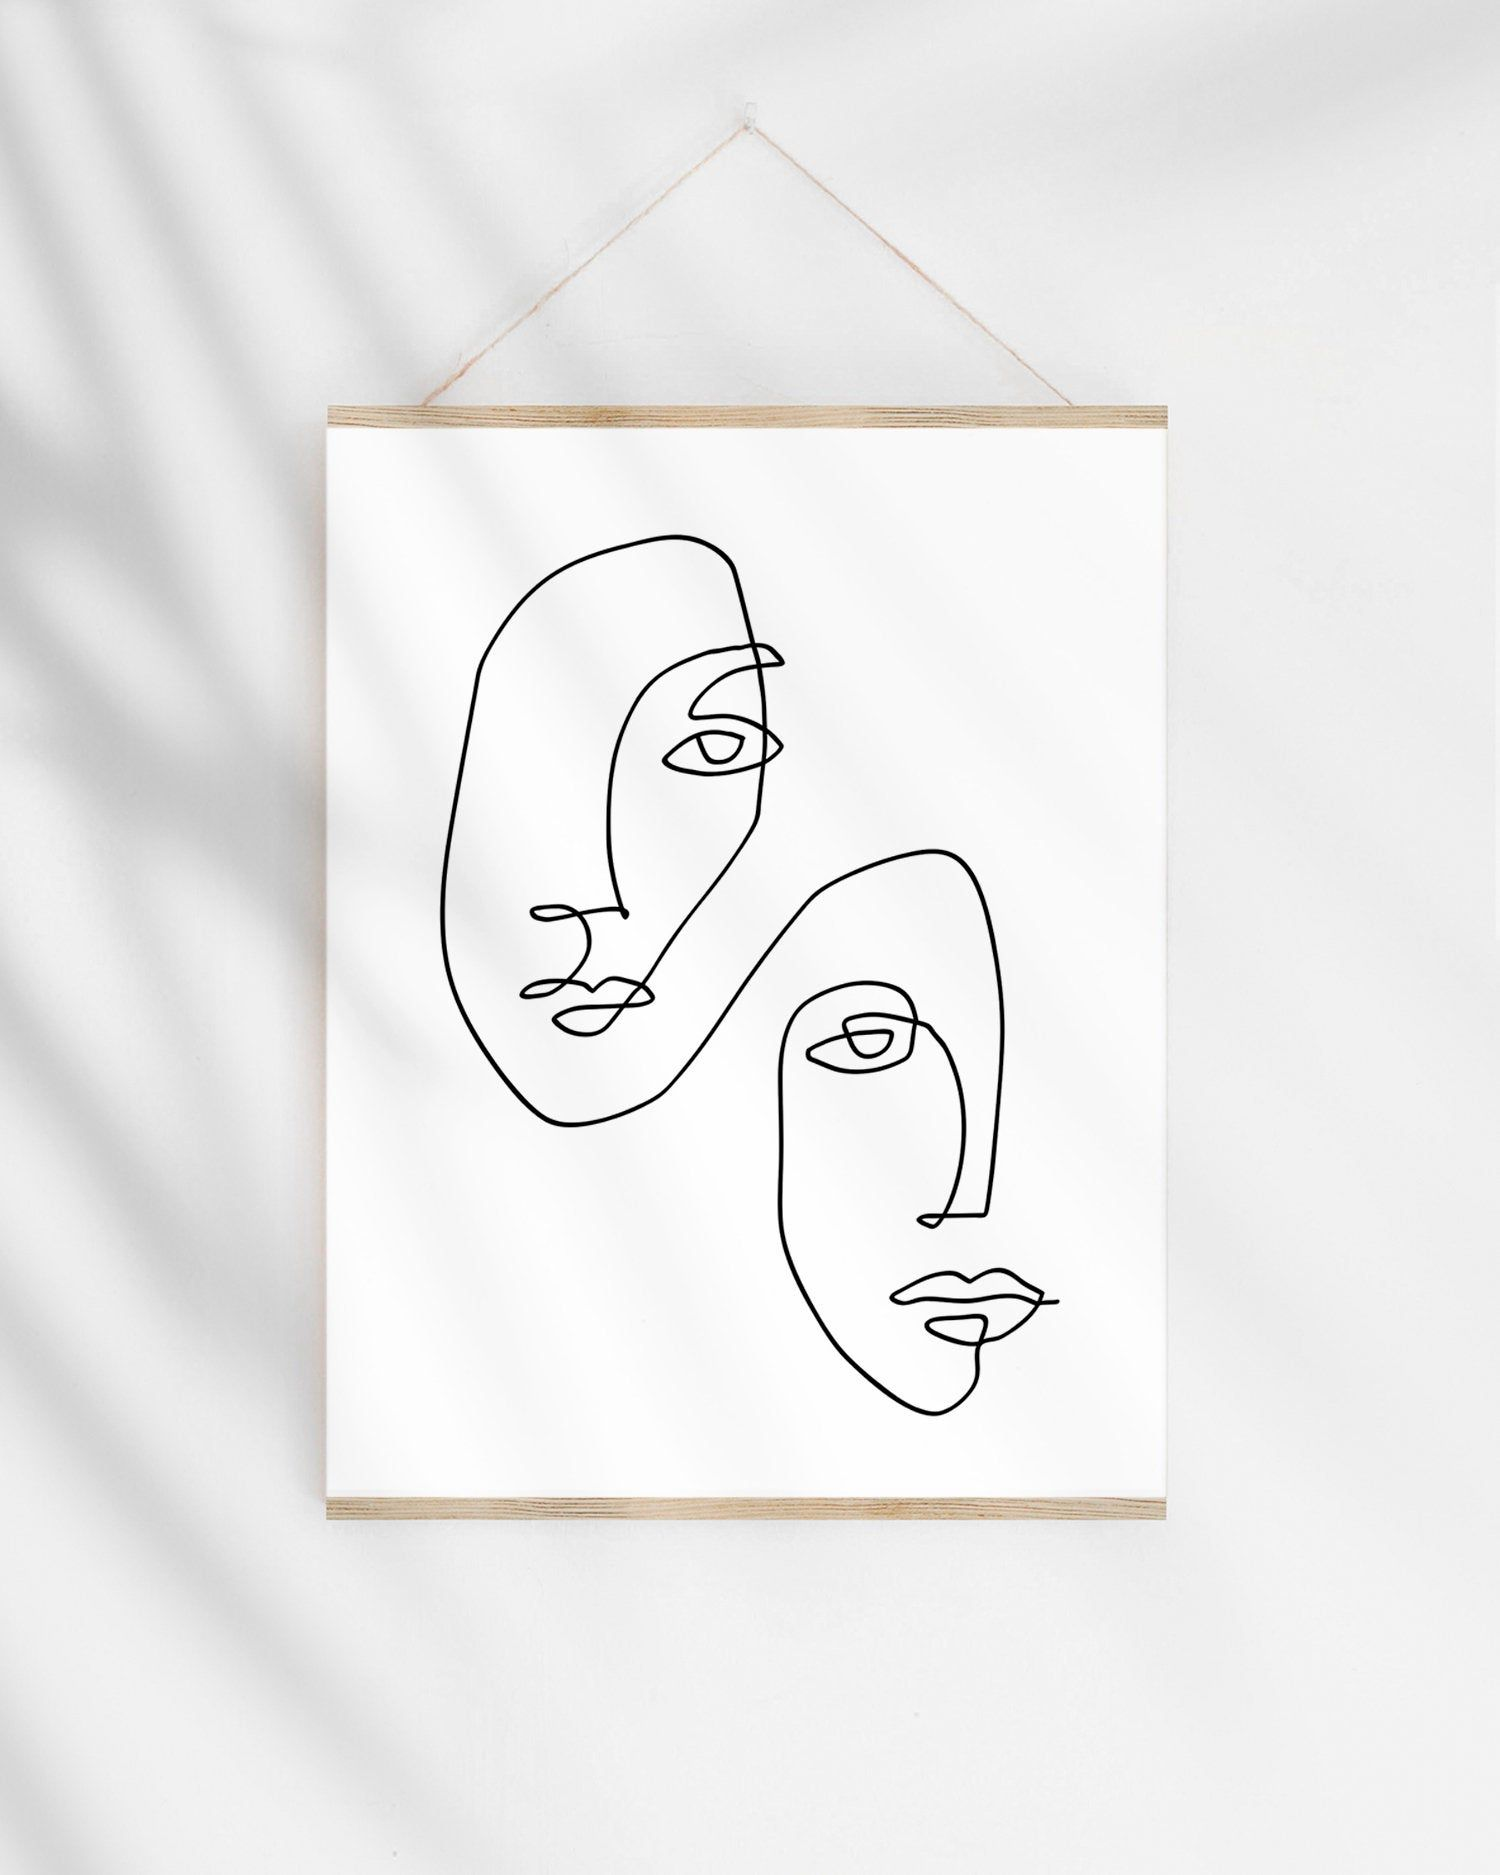 Continuous Line Art Print, One Line Drawing Faces Illustration, Modern Minimalist Sketch Abstract Wall Art Printable Original Artwork